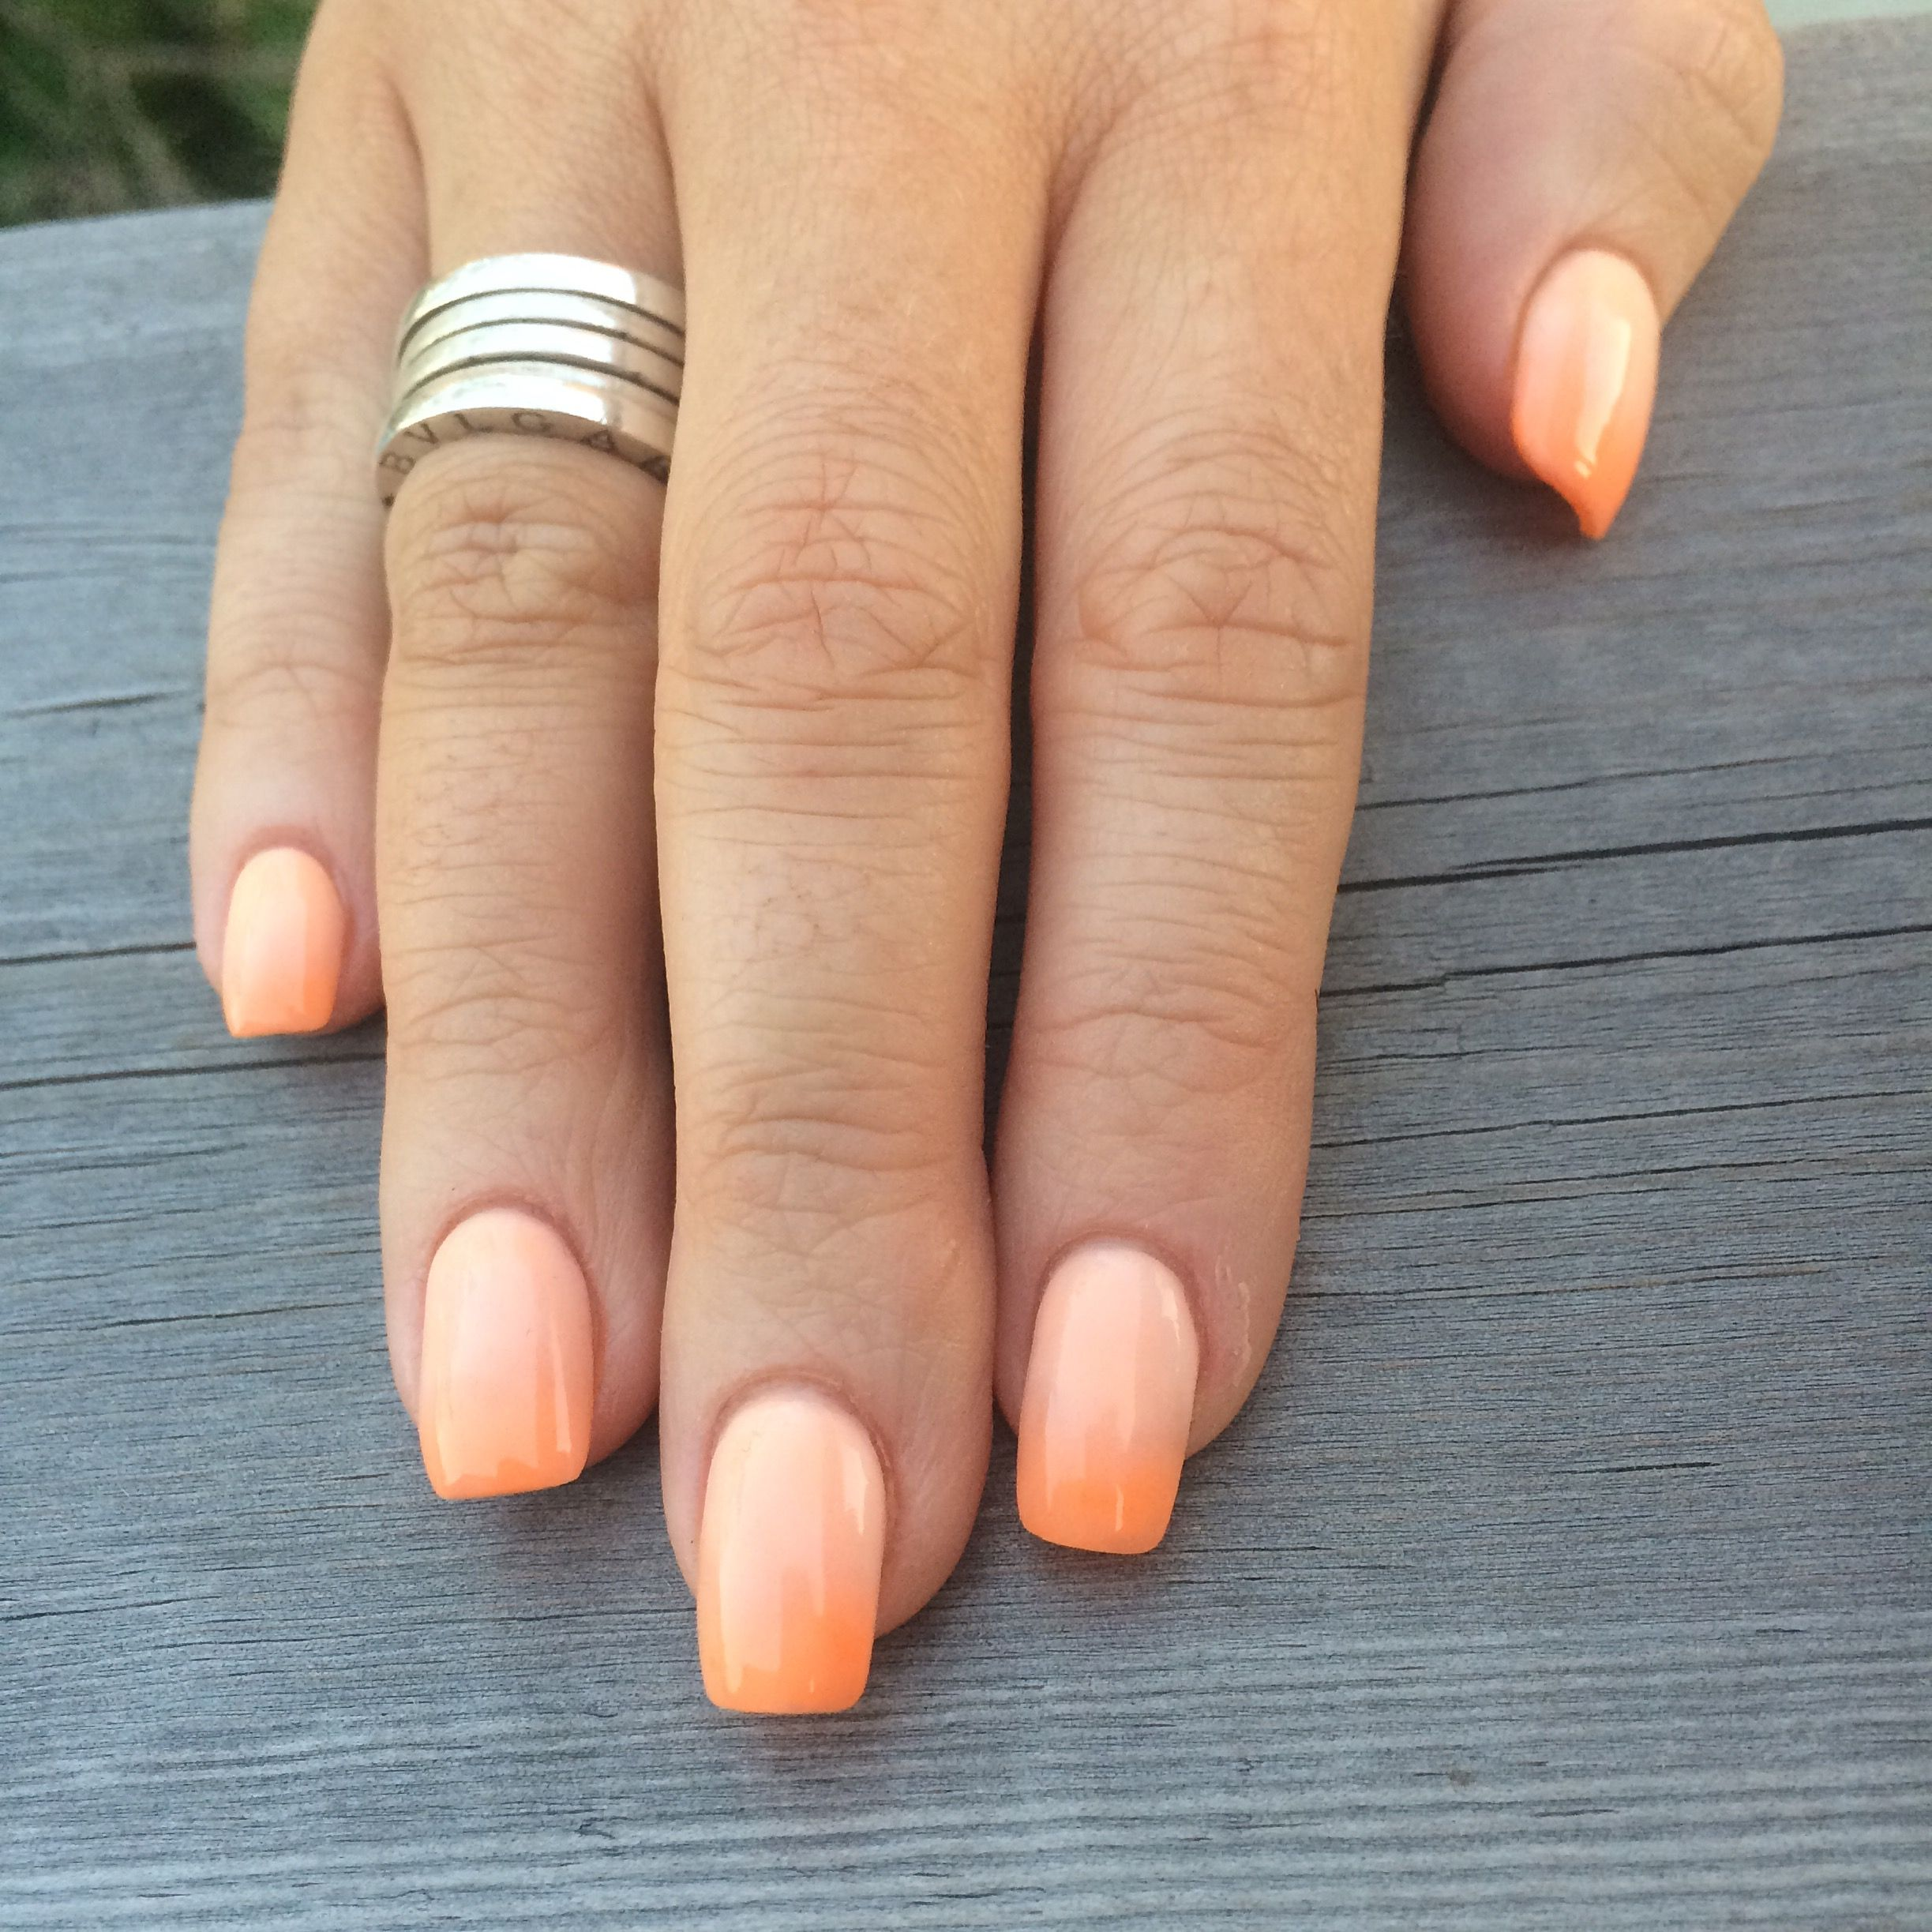 Ombré nails #ombre #nails #coral #peach #orange #square | Nails ...